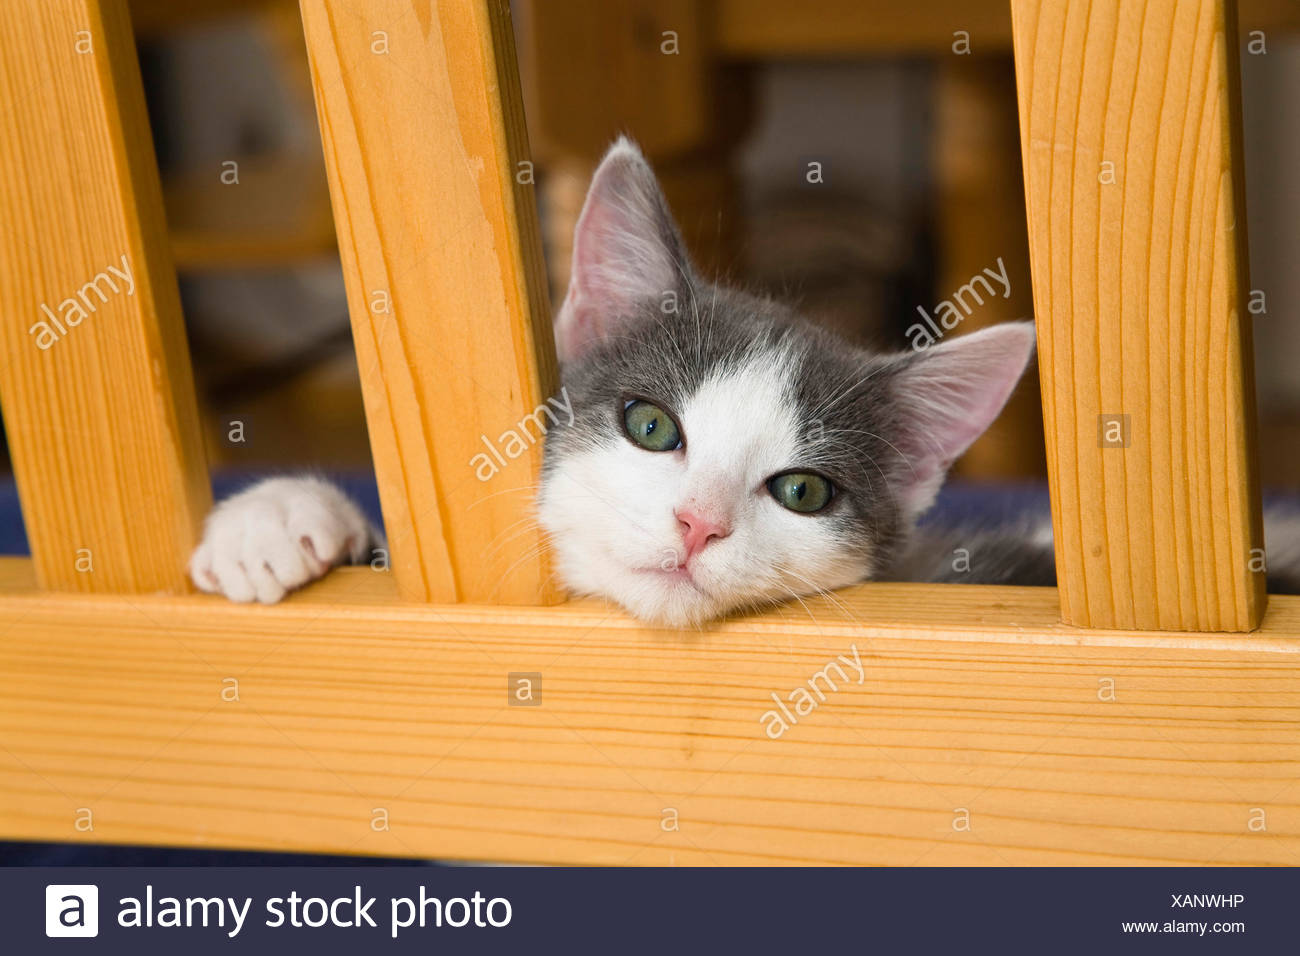 Weary Cat Stock Photos & Weary Cat Stock Images - Alamy